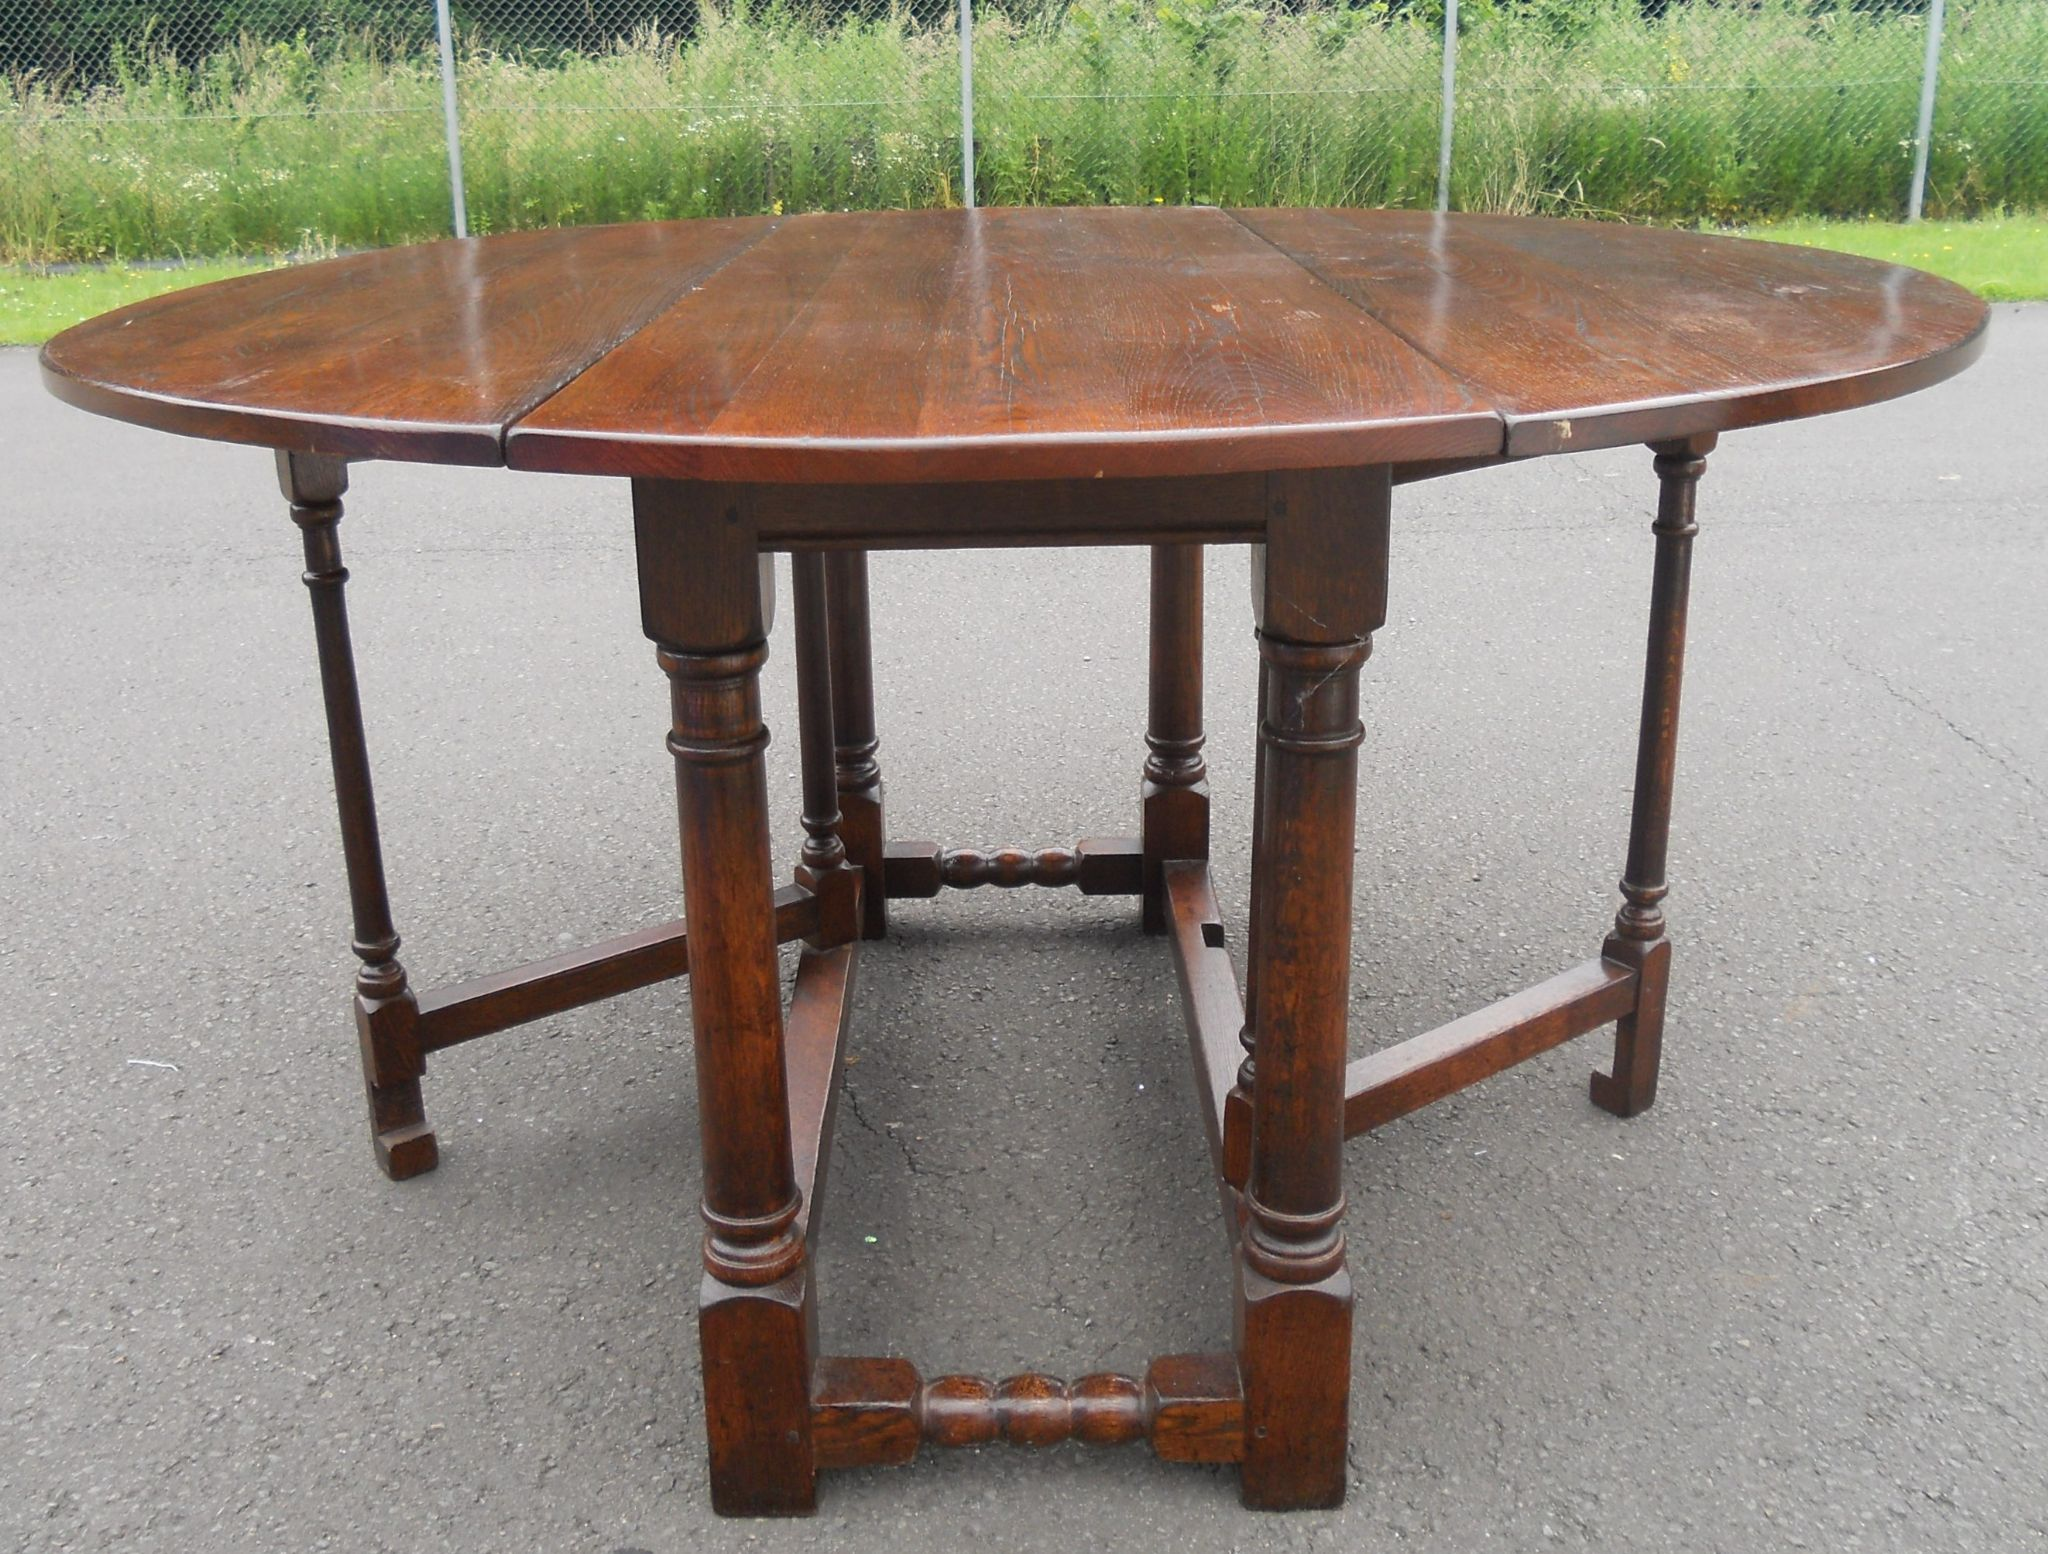 Sold large oval oak gateleg dining table to seat six people for Gateleg dining table